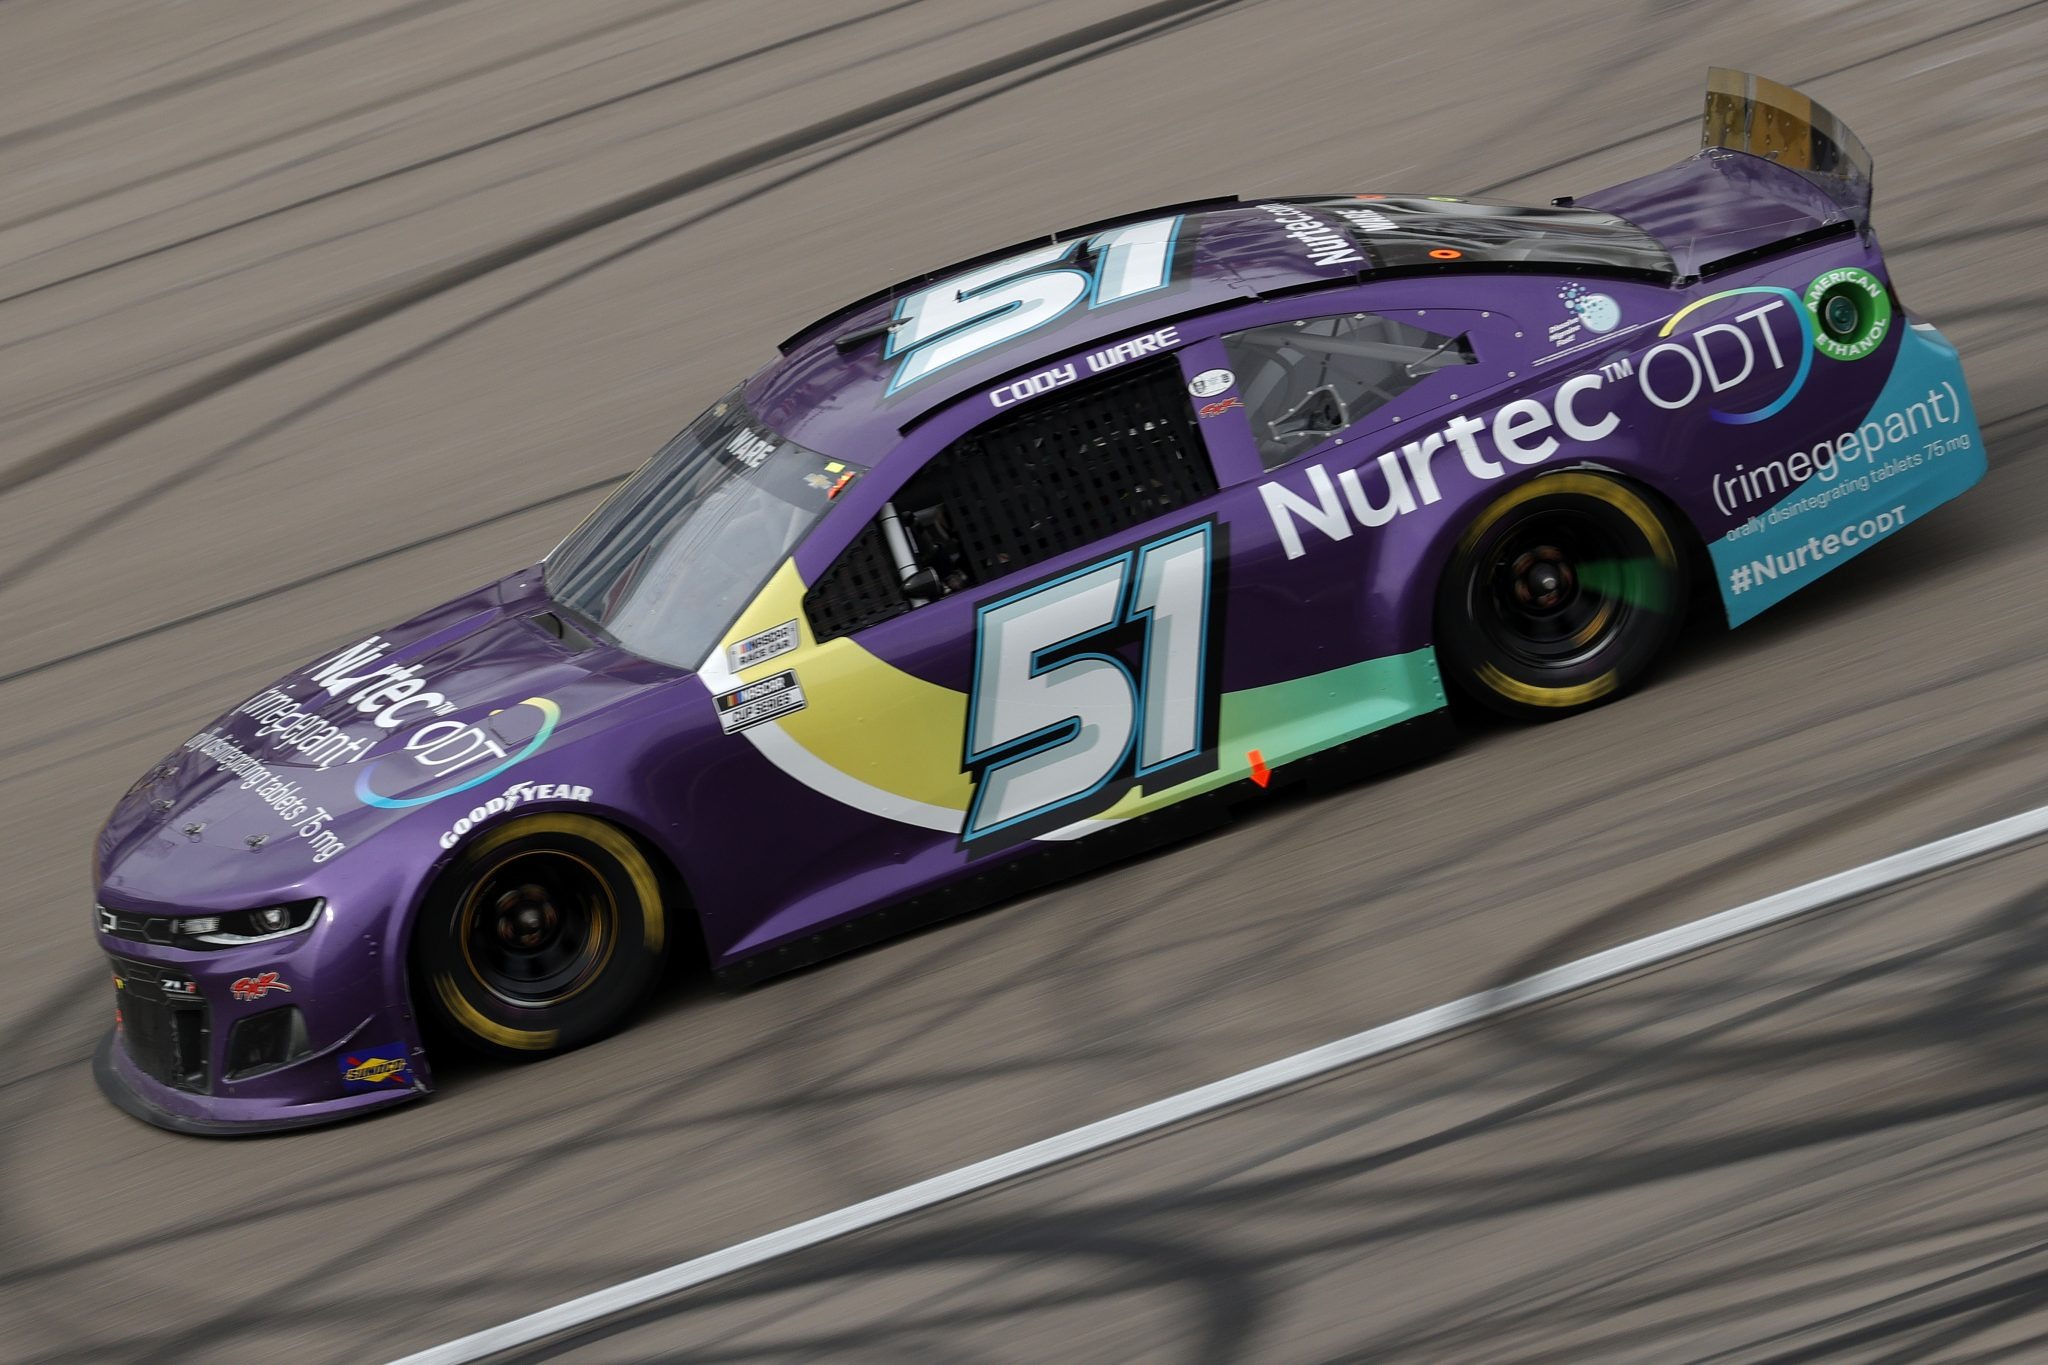 LAS VEGAS, NEVADA - MARCH 07: Cody Ware, driver of the #51 Nurtec ODT Chevrolet, drives during the NASCAR Cup Series Pennzoil 400 presented by Jiffy Lube at the Las Vegas Motor Speedway on March 07, 2021 in Las Vegas, Nevada. (Photo by Chris Graythen/Getty Images) | Getty Images